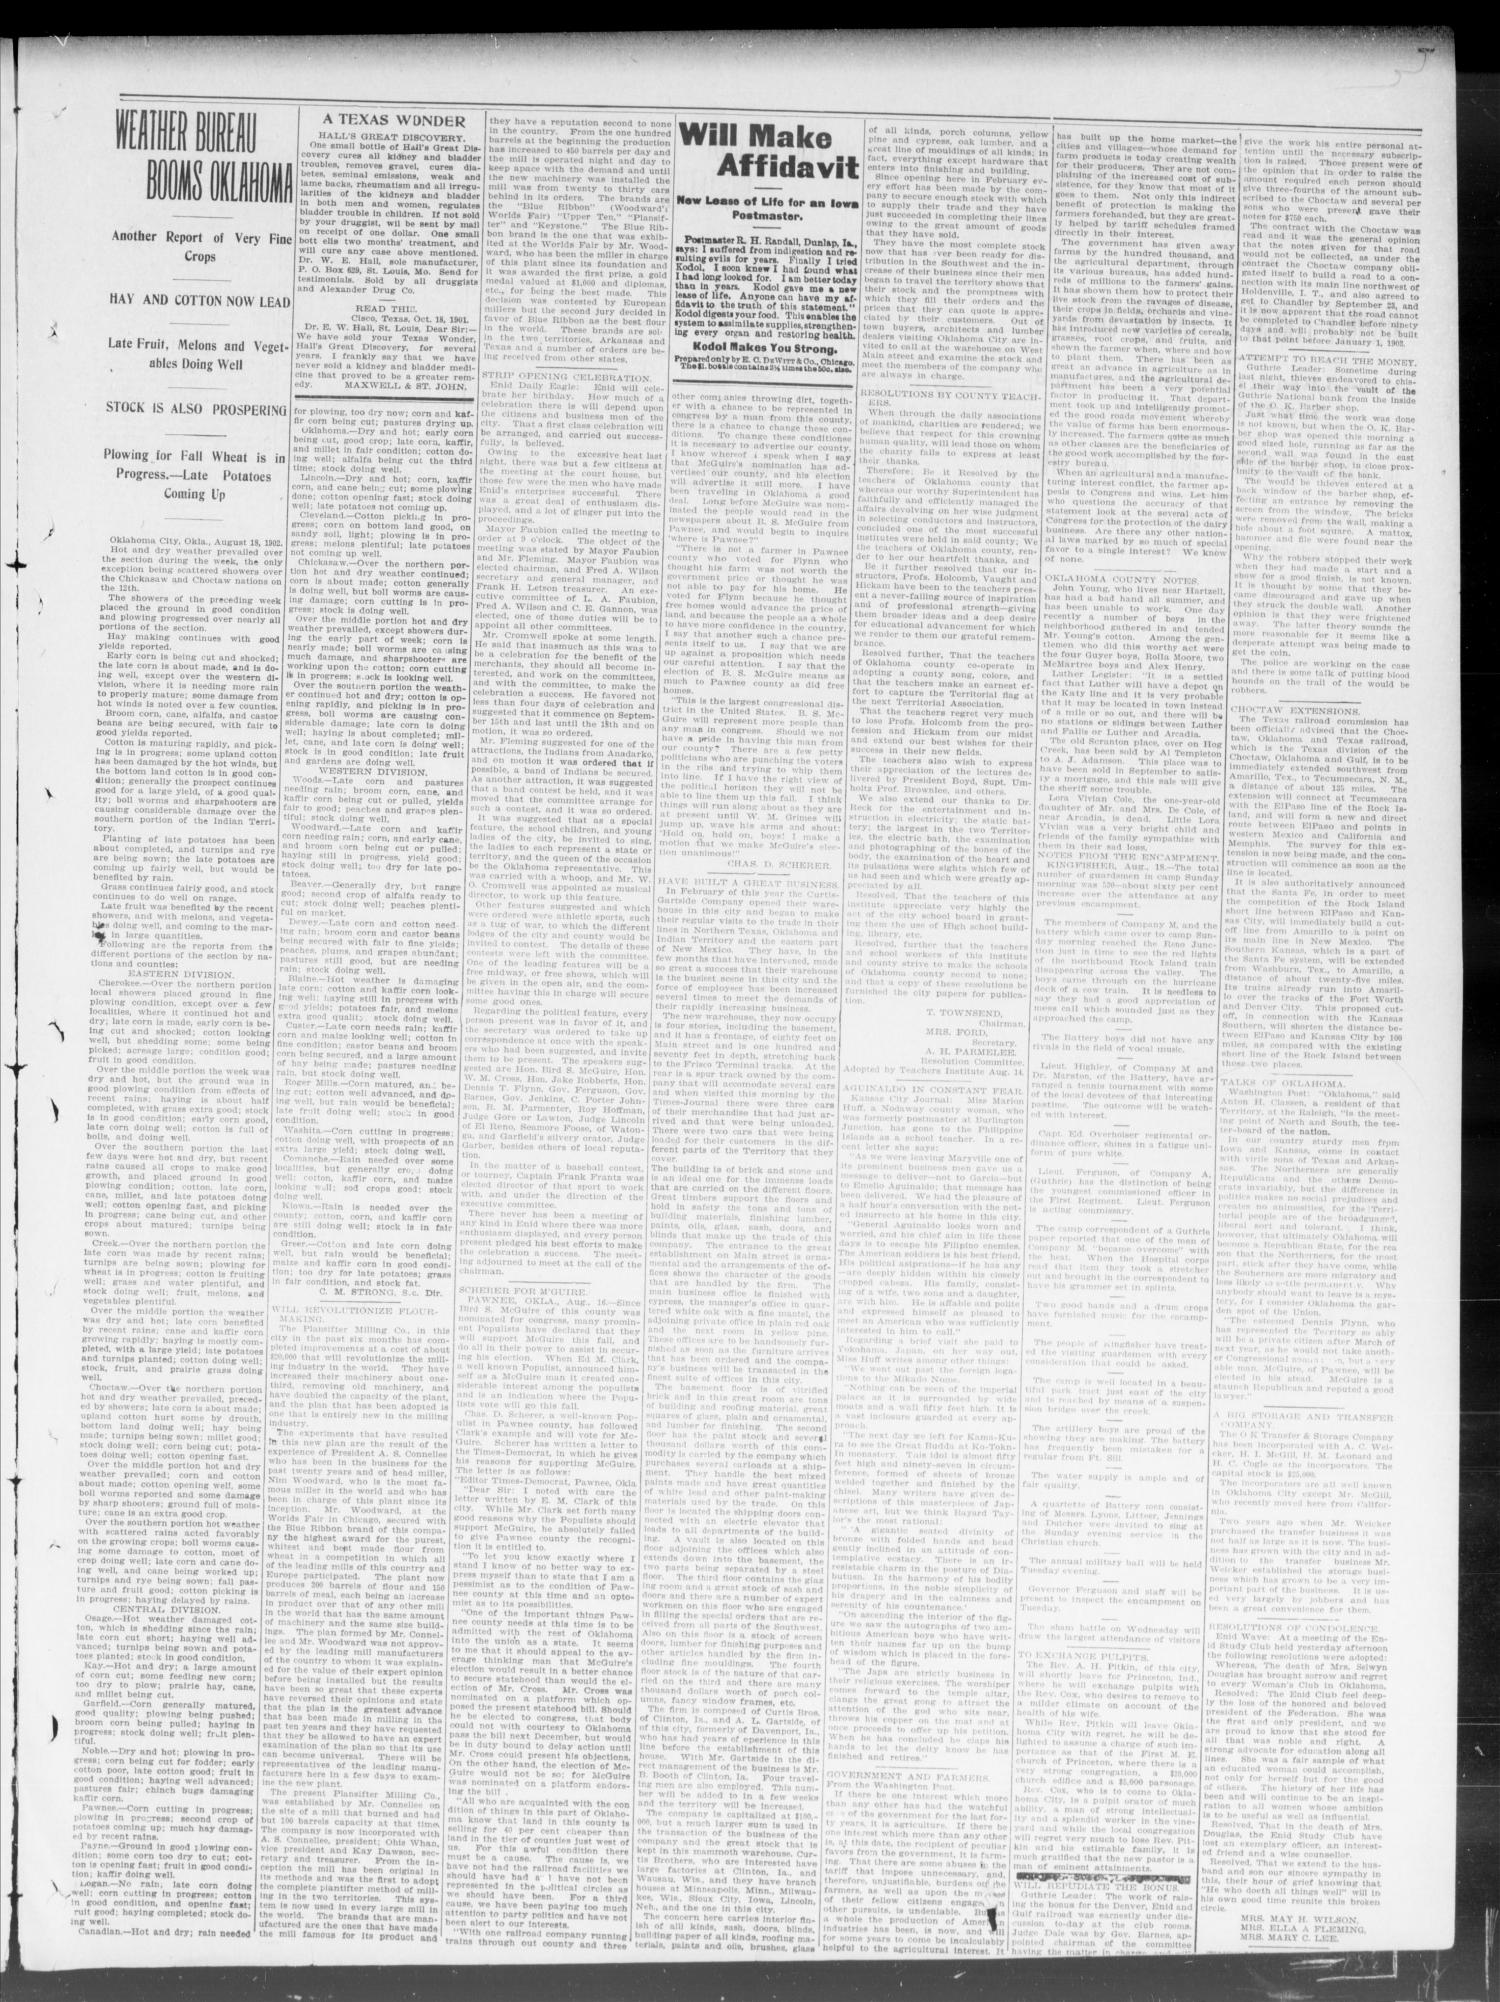 The Weekly Times-Journal. (Oklahoma City, Okla.), Vol. 14, No. 18, Ed. 1 Friday, August 22, 1902                                                                                                      [Sequence #]: 3 of 8